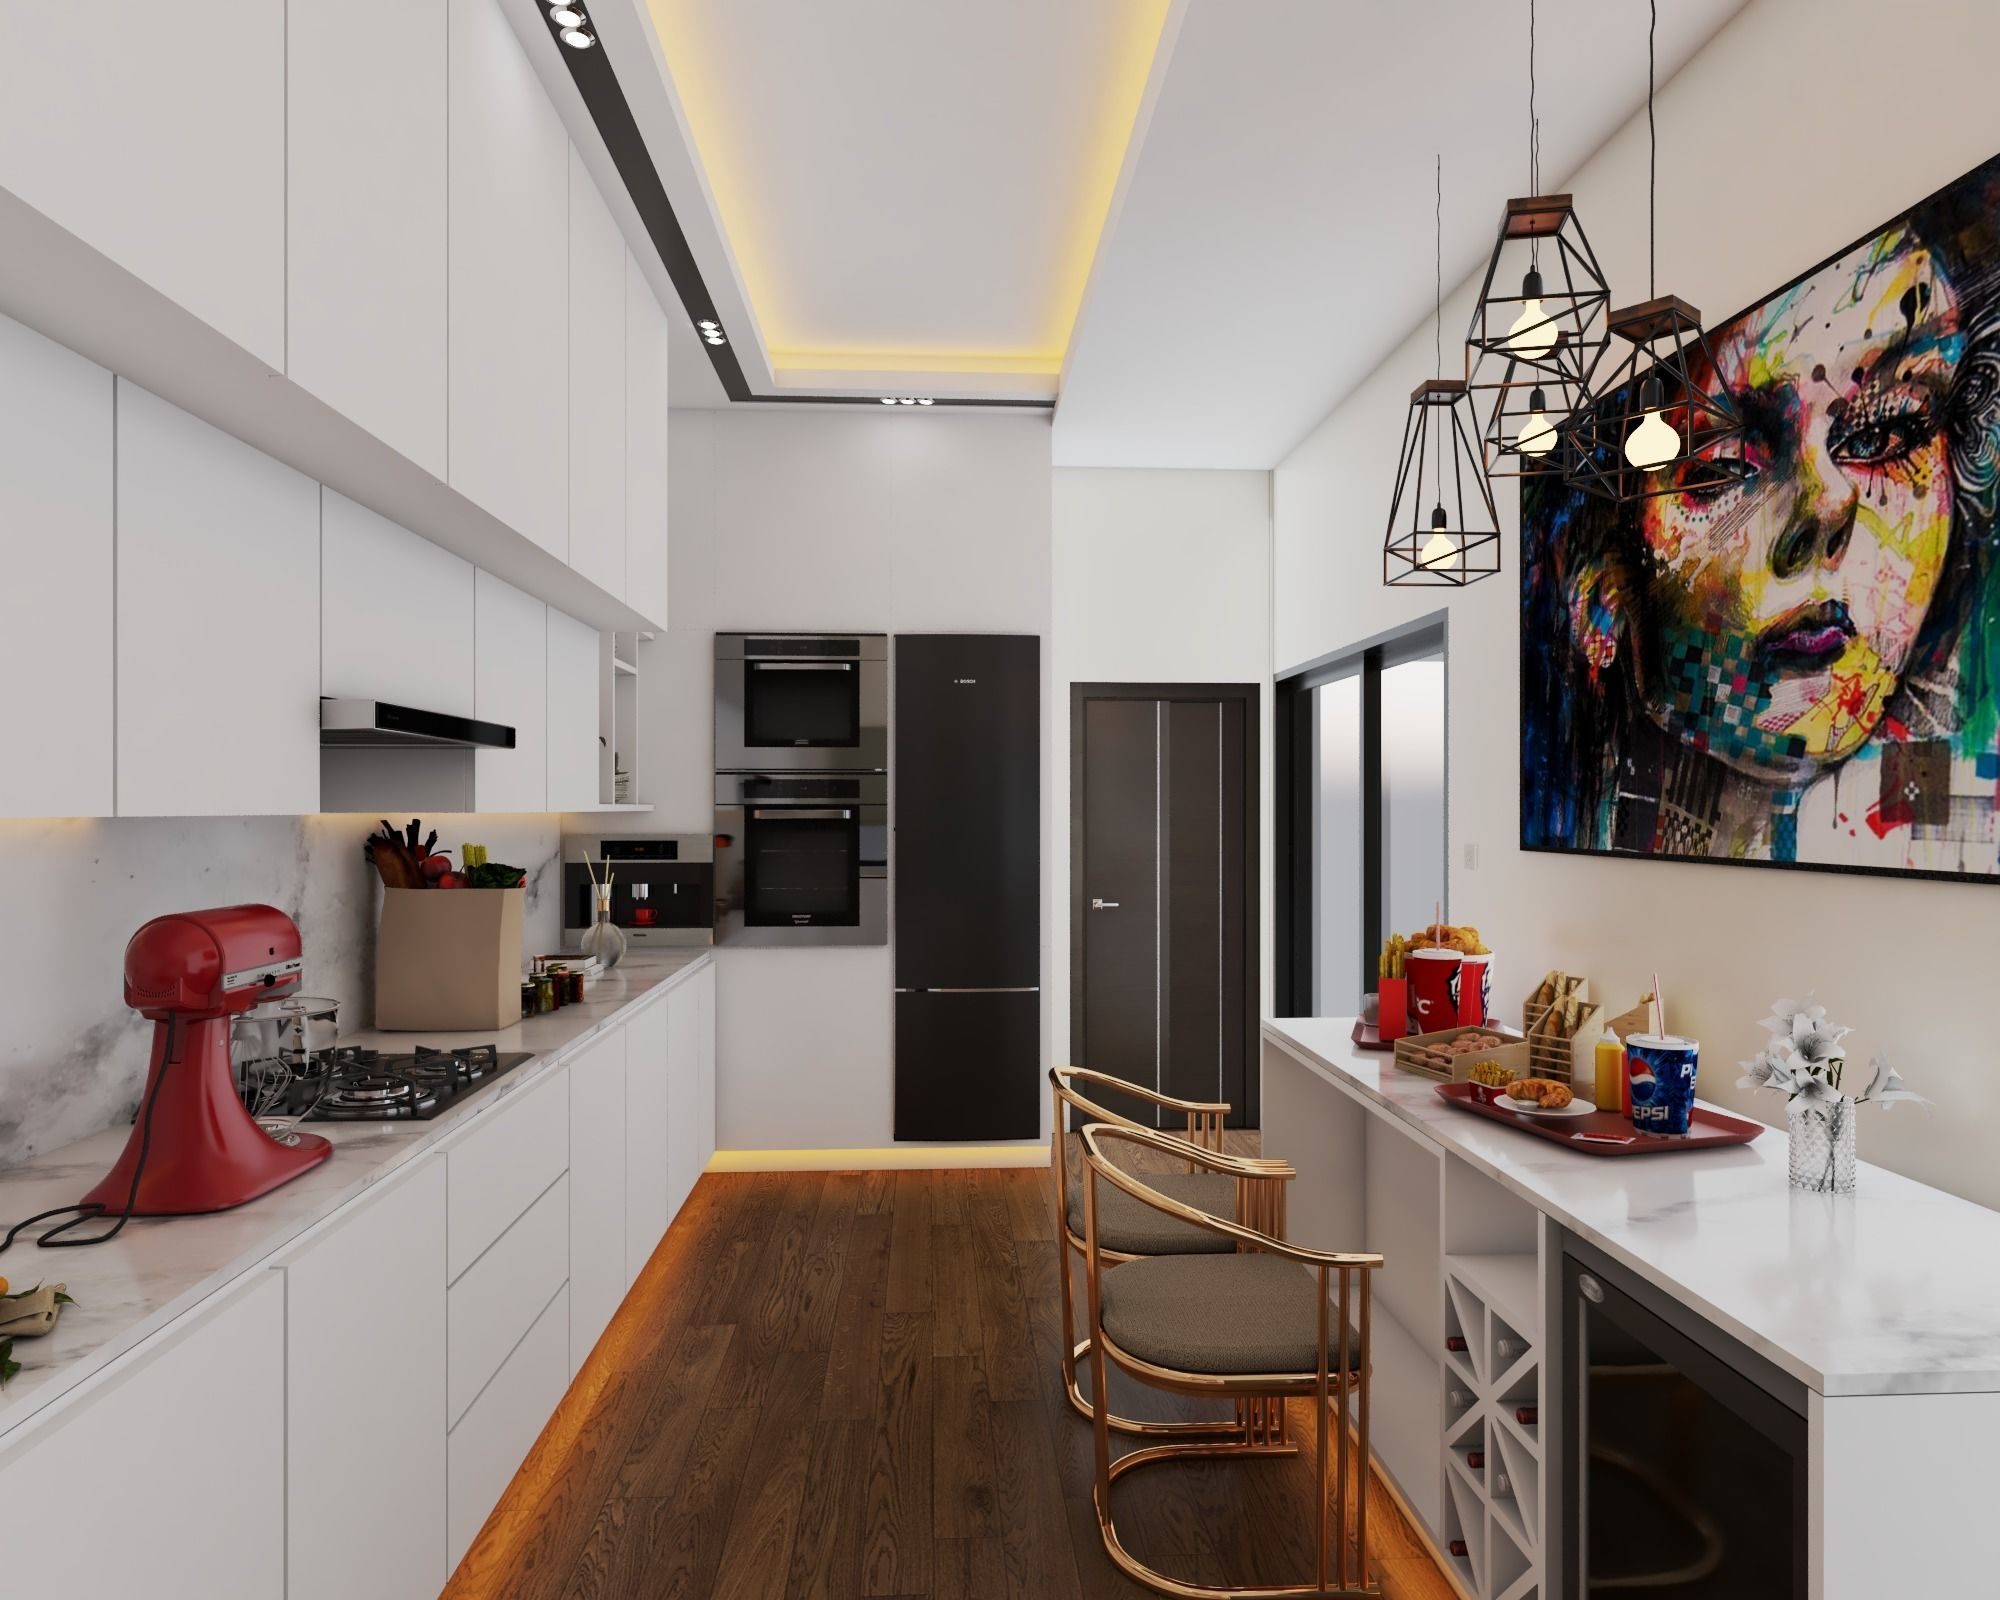 RESIDENTIAL KITCHEN VISUALIZATION